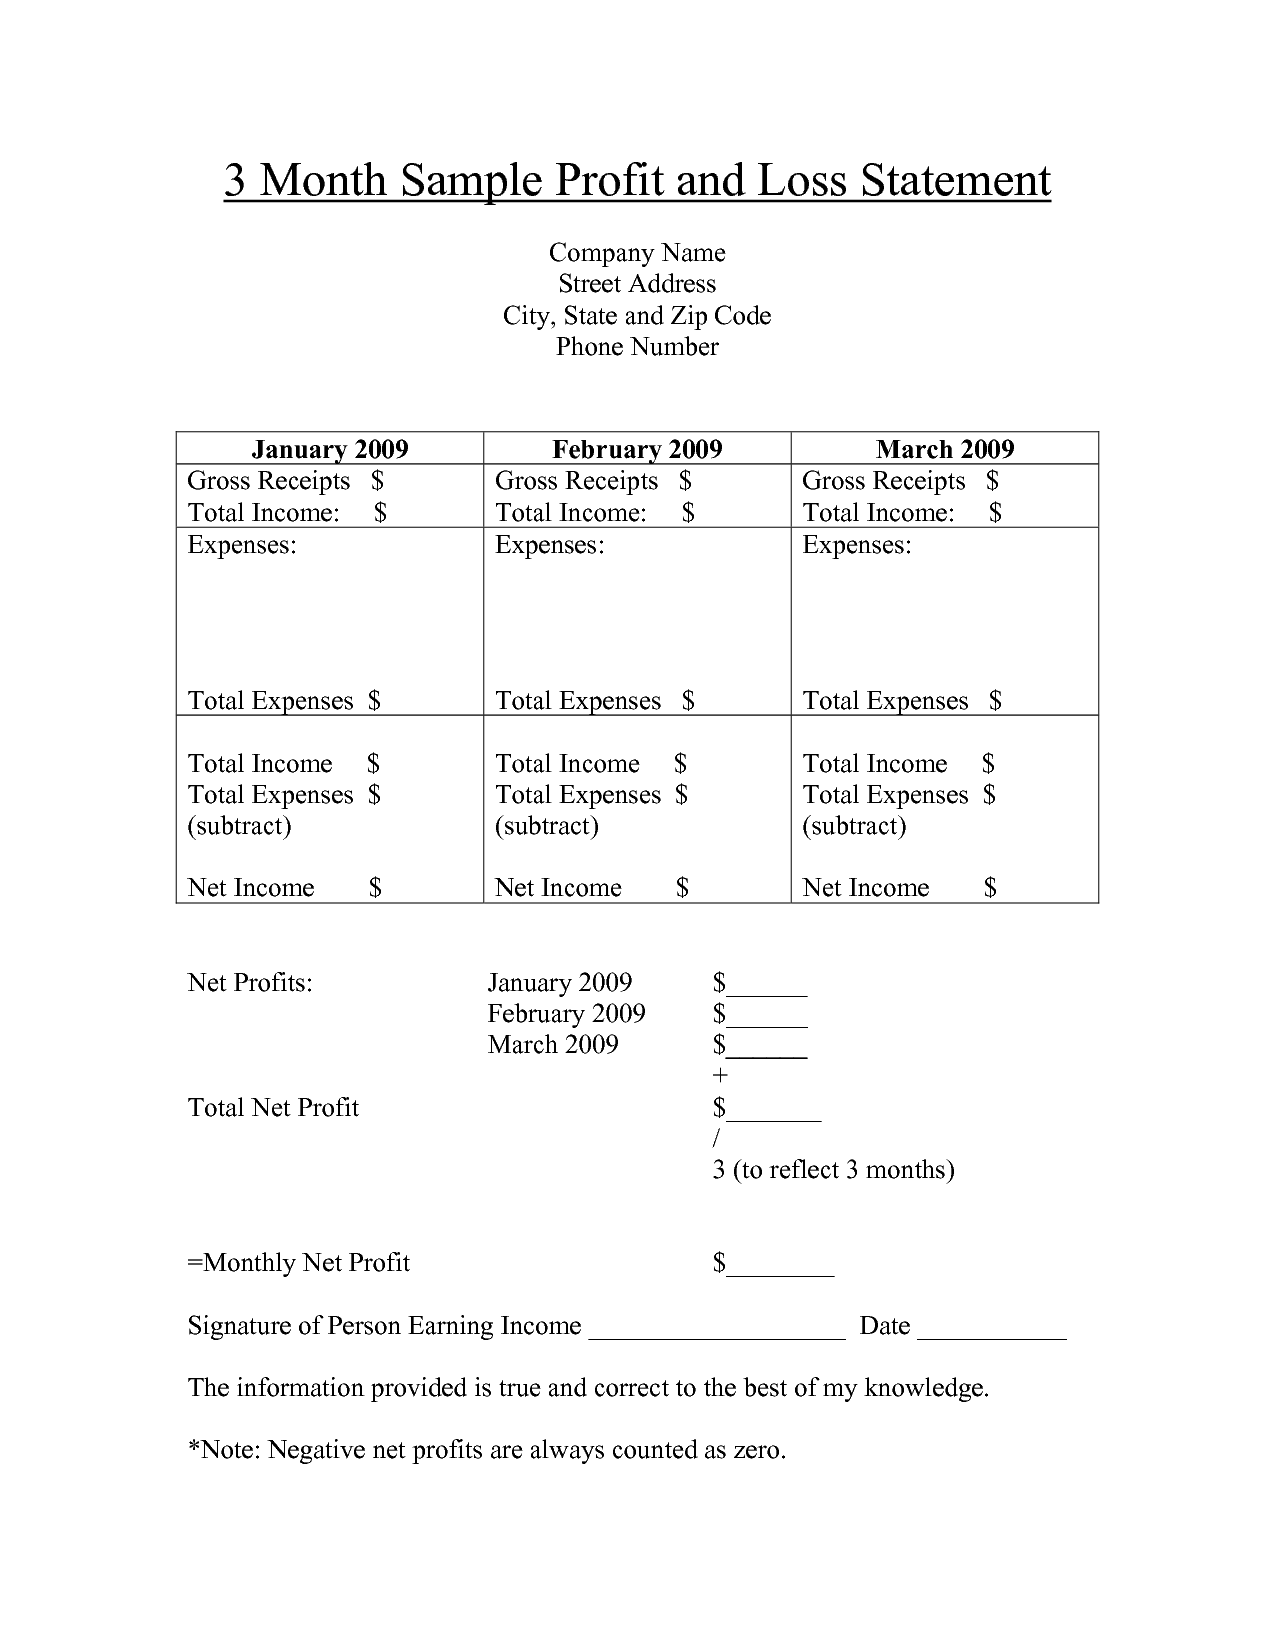 Free Printable Profit and Loss Statement Form for Home Care Bing – Blank Profit and Loss Statement Form